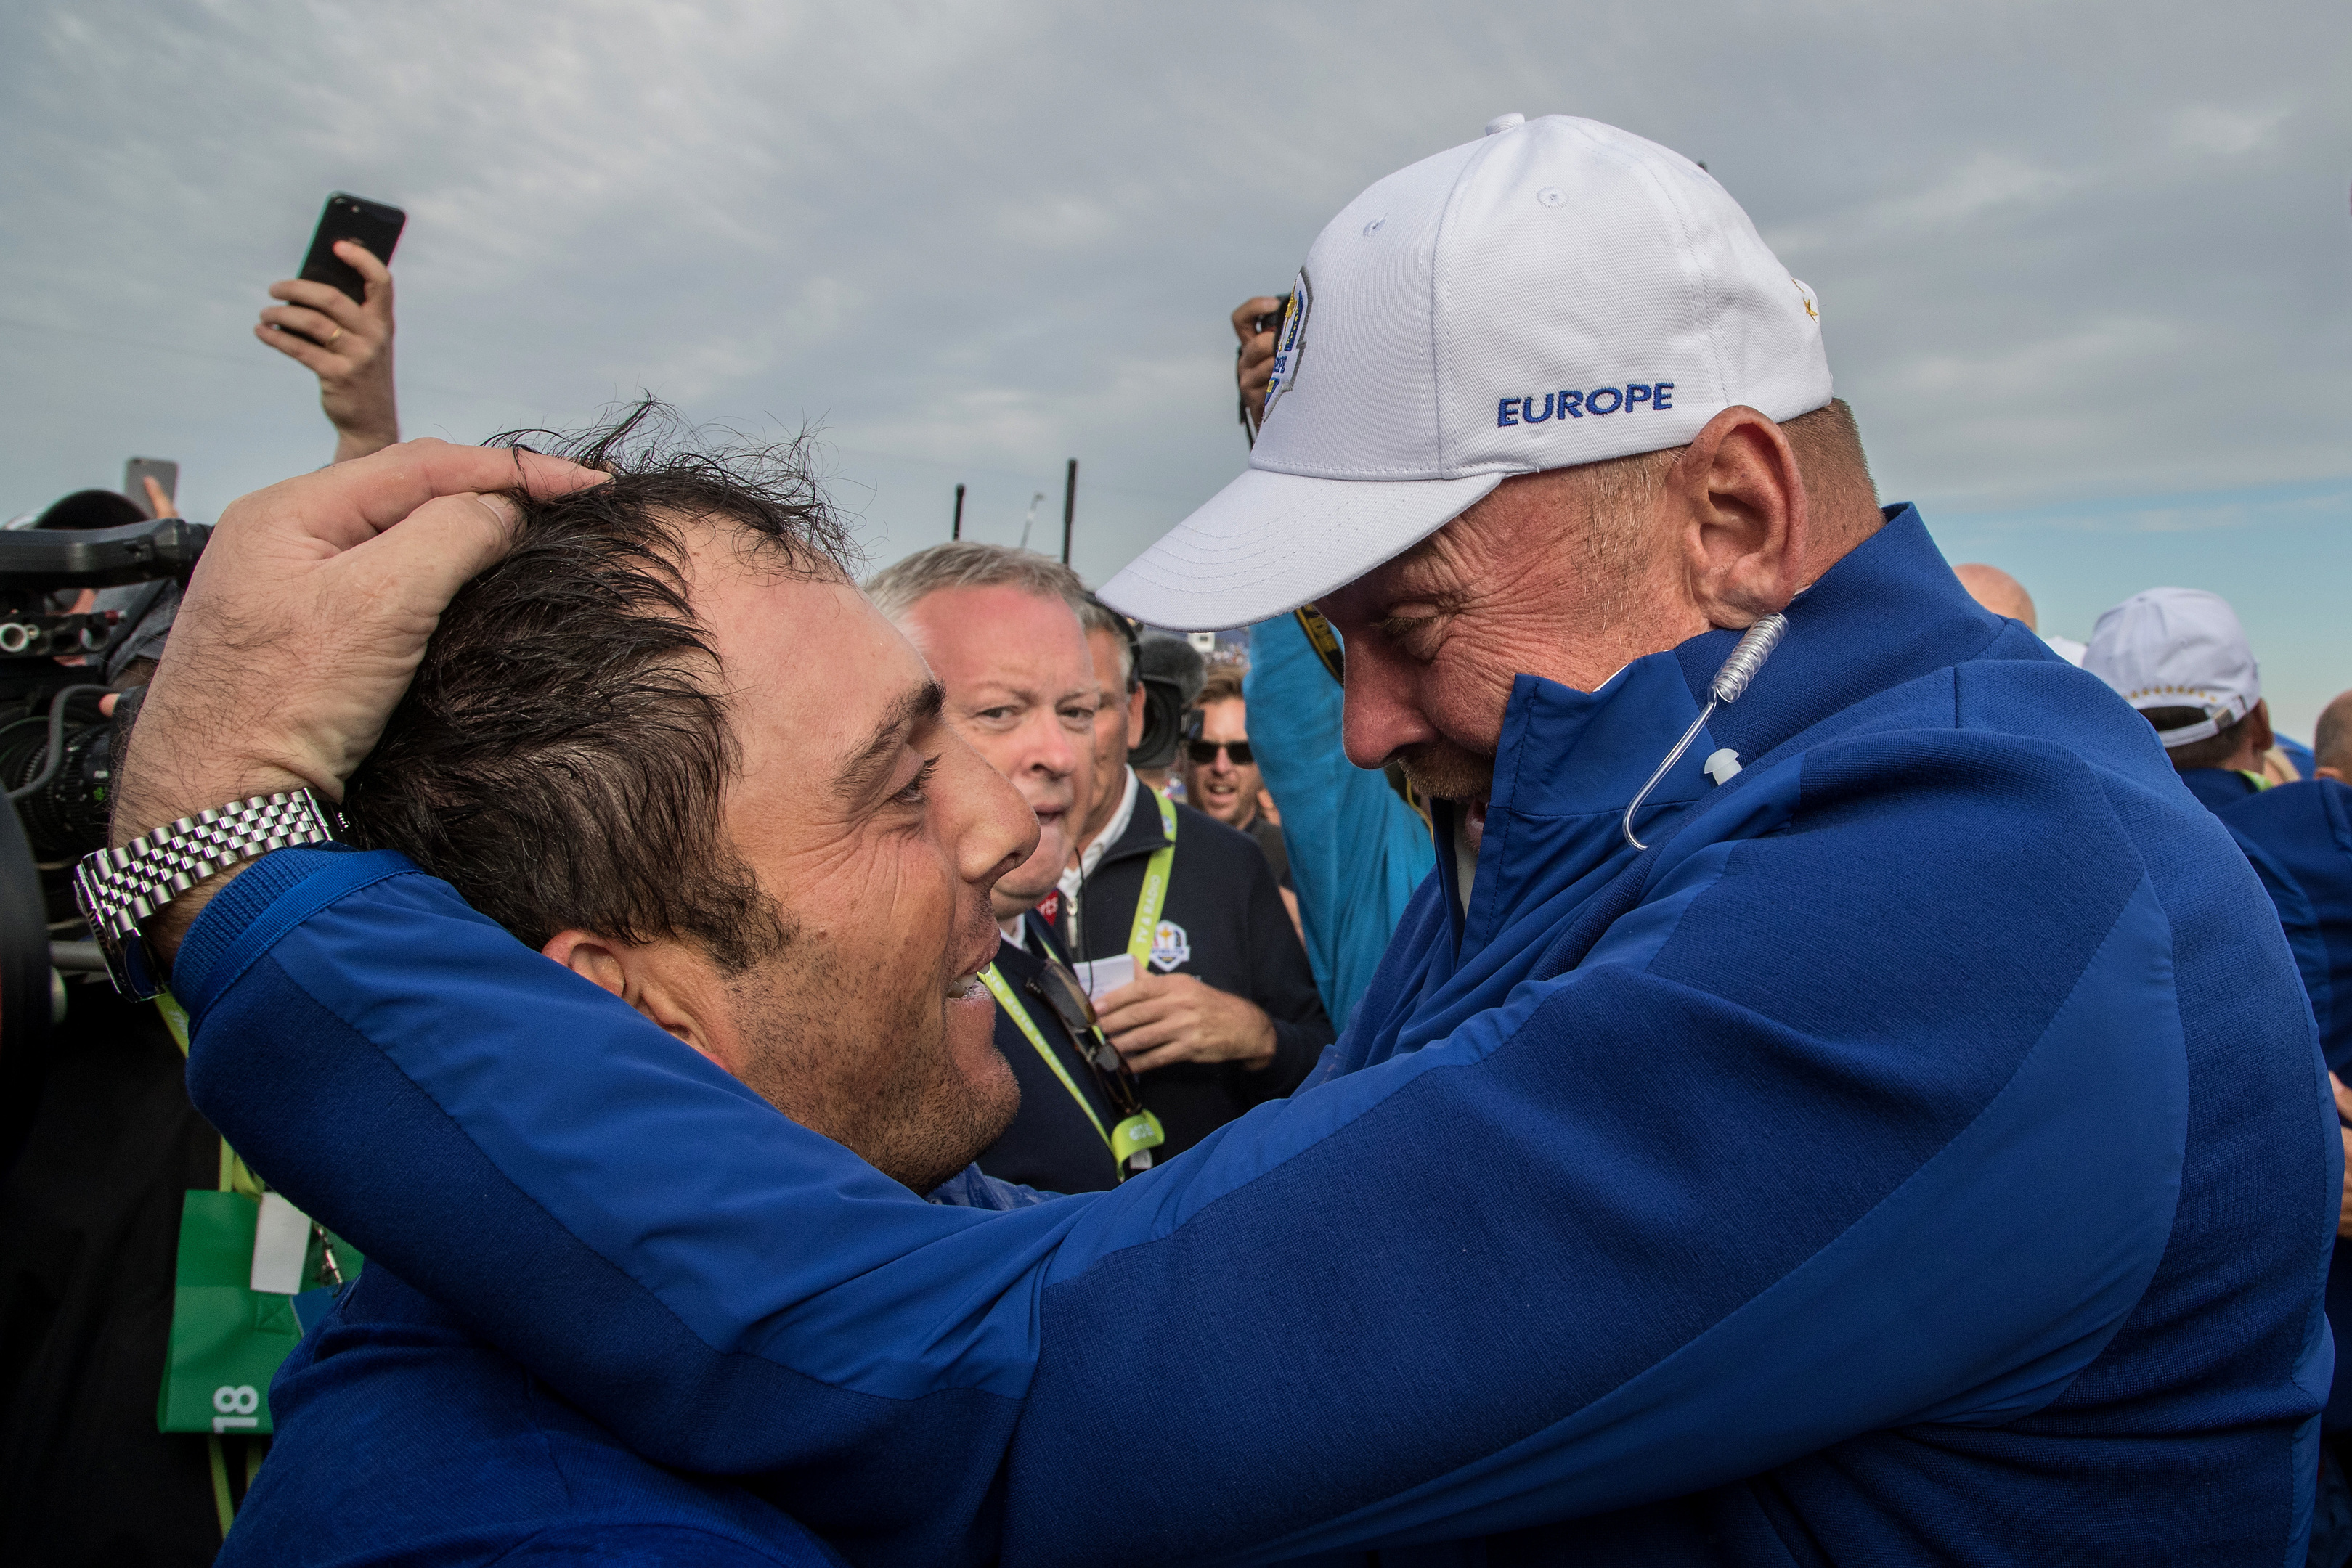 Captain Thomas Bjorn hugs Francesco Molinari as he secures the winning point to take the victory during the singles matches of the 2018 Ryder Cup.